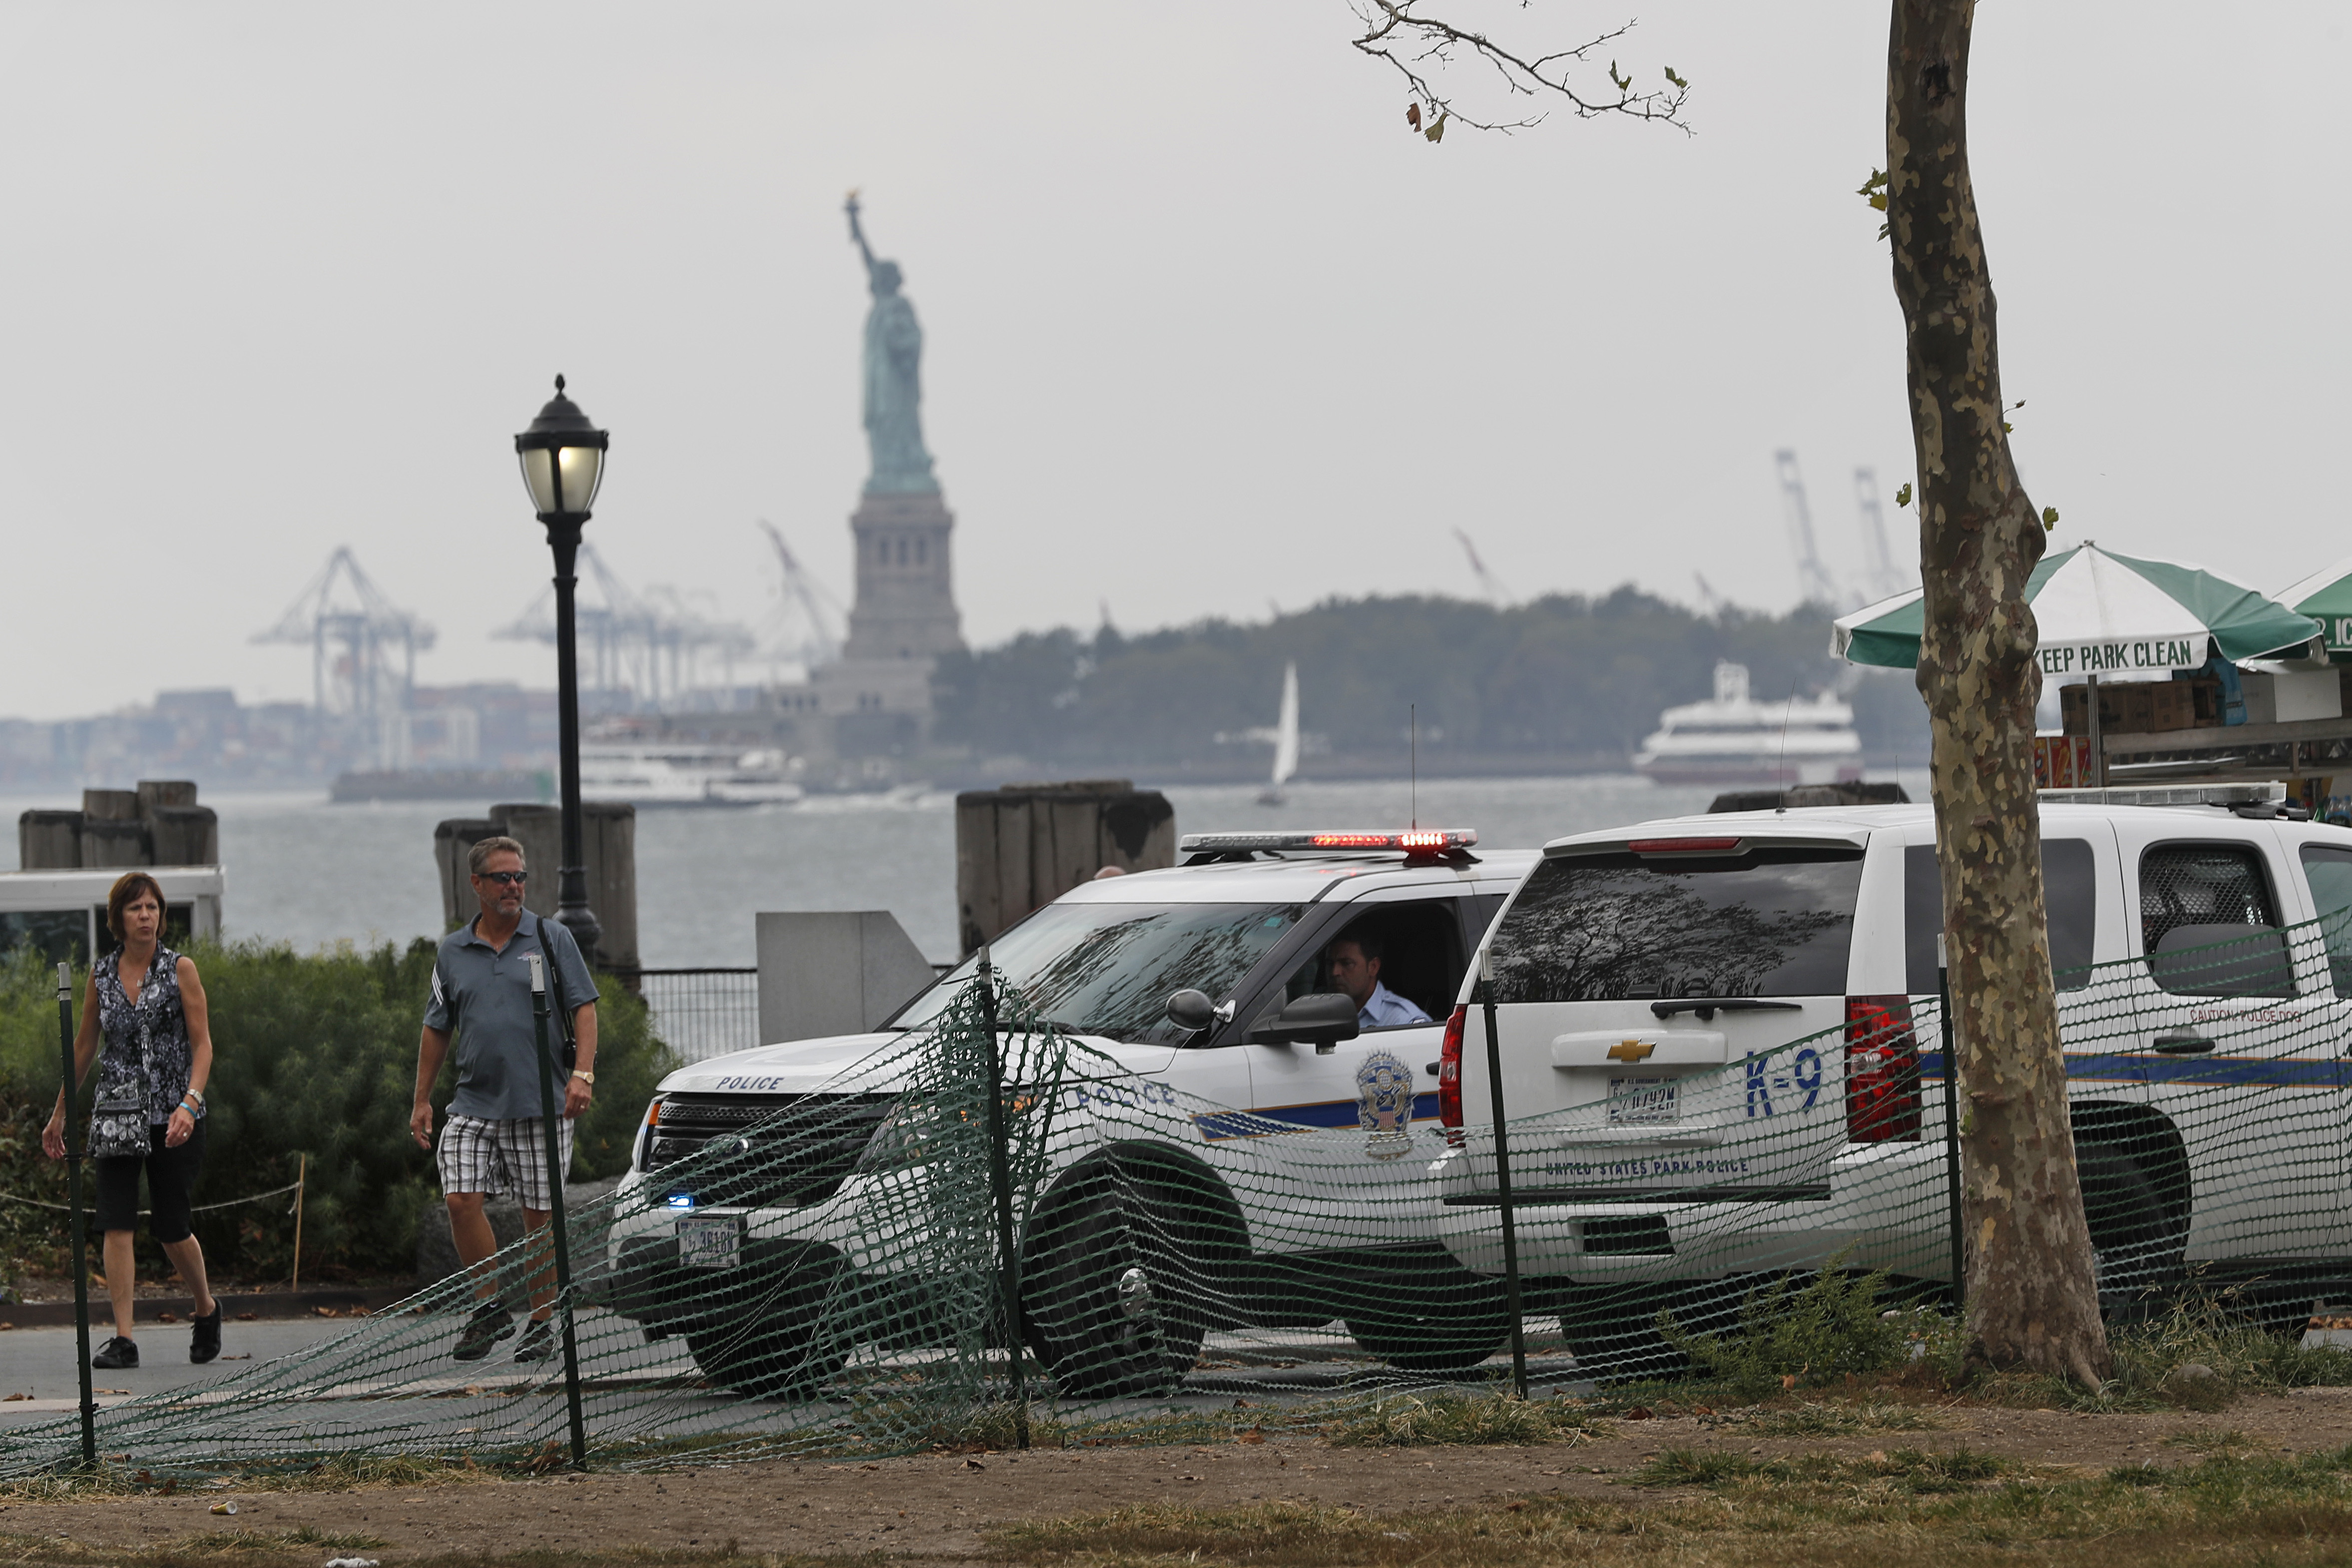 United States Parks Dept. police patrol Battery Park near the ferry entrance to the Statue of Liberty, Sunday, Sept. 18, 2016, in New York. Gov. Cuomo said 1,000 additional law enforcement officers were being deployed after the Saturday night blast in Chelsea, a primarily residential neighborhood on Manhattan's west side that's known for its art galleries and large gay population. He encouraged New Yorkers to go about their day as usual.(AP Photo/Mary Altaffer)